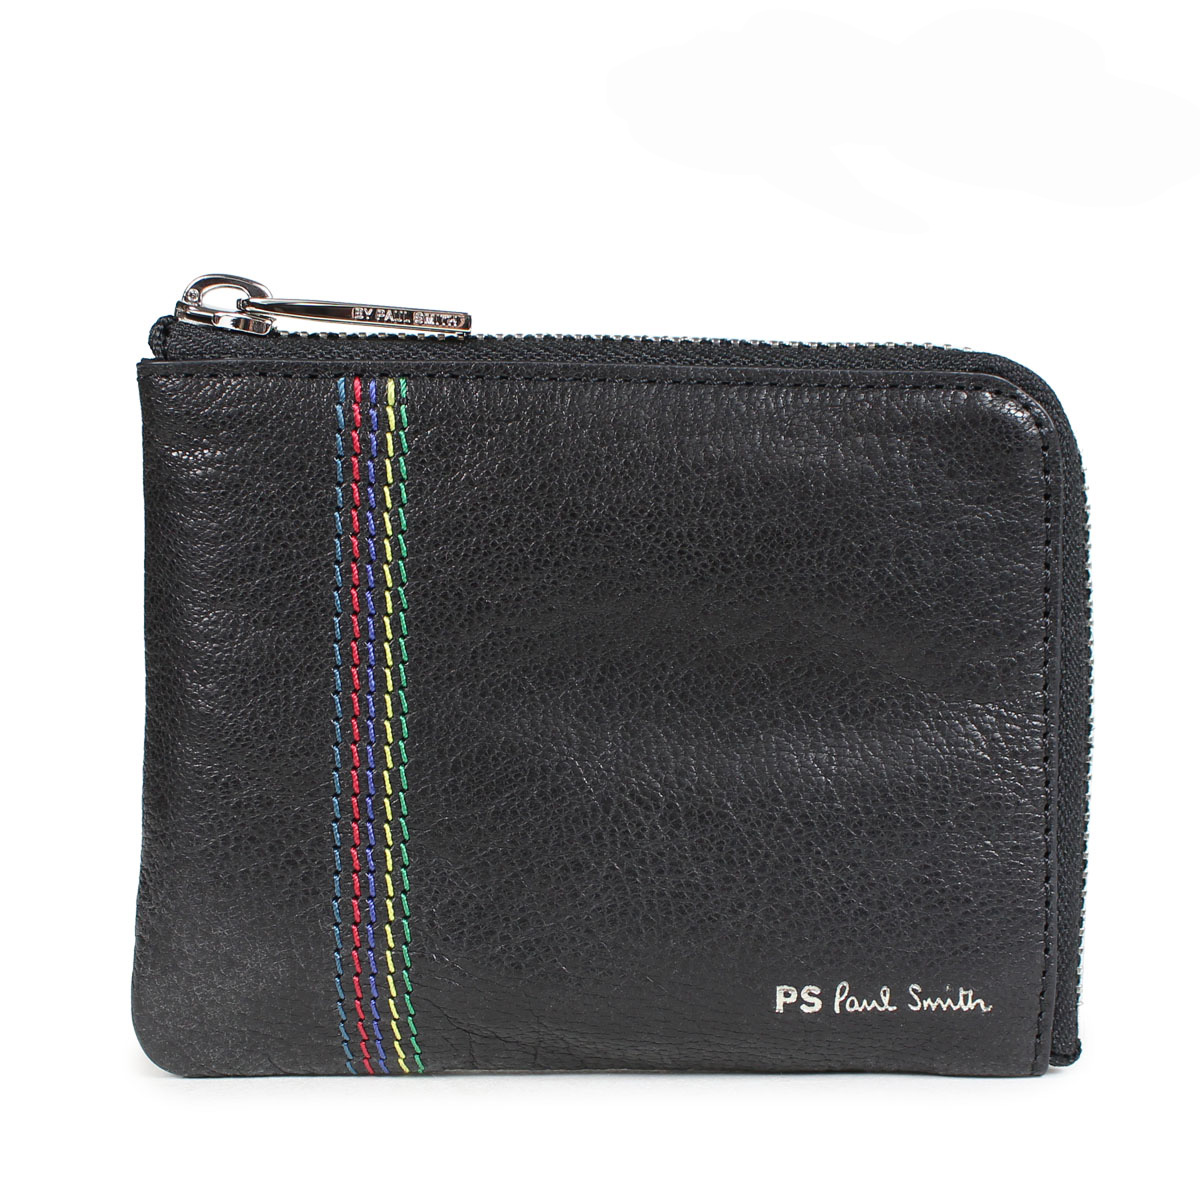 ALLSPORTS: Paul Smith WALLET Paul Smith wallet